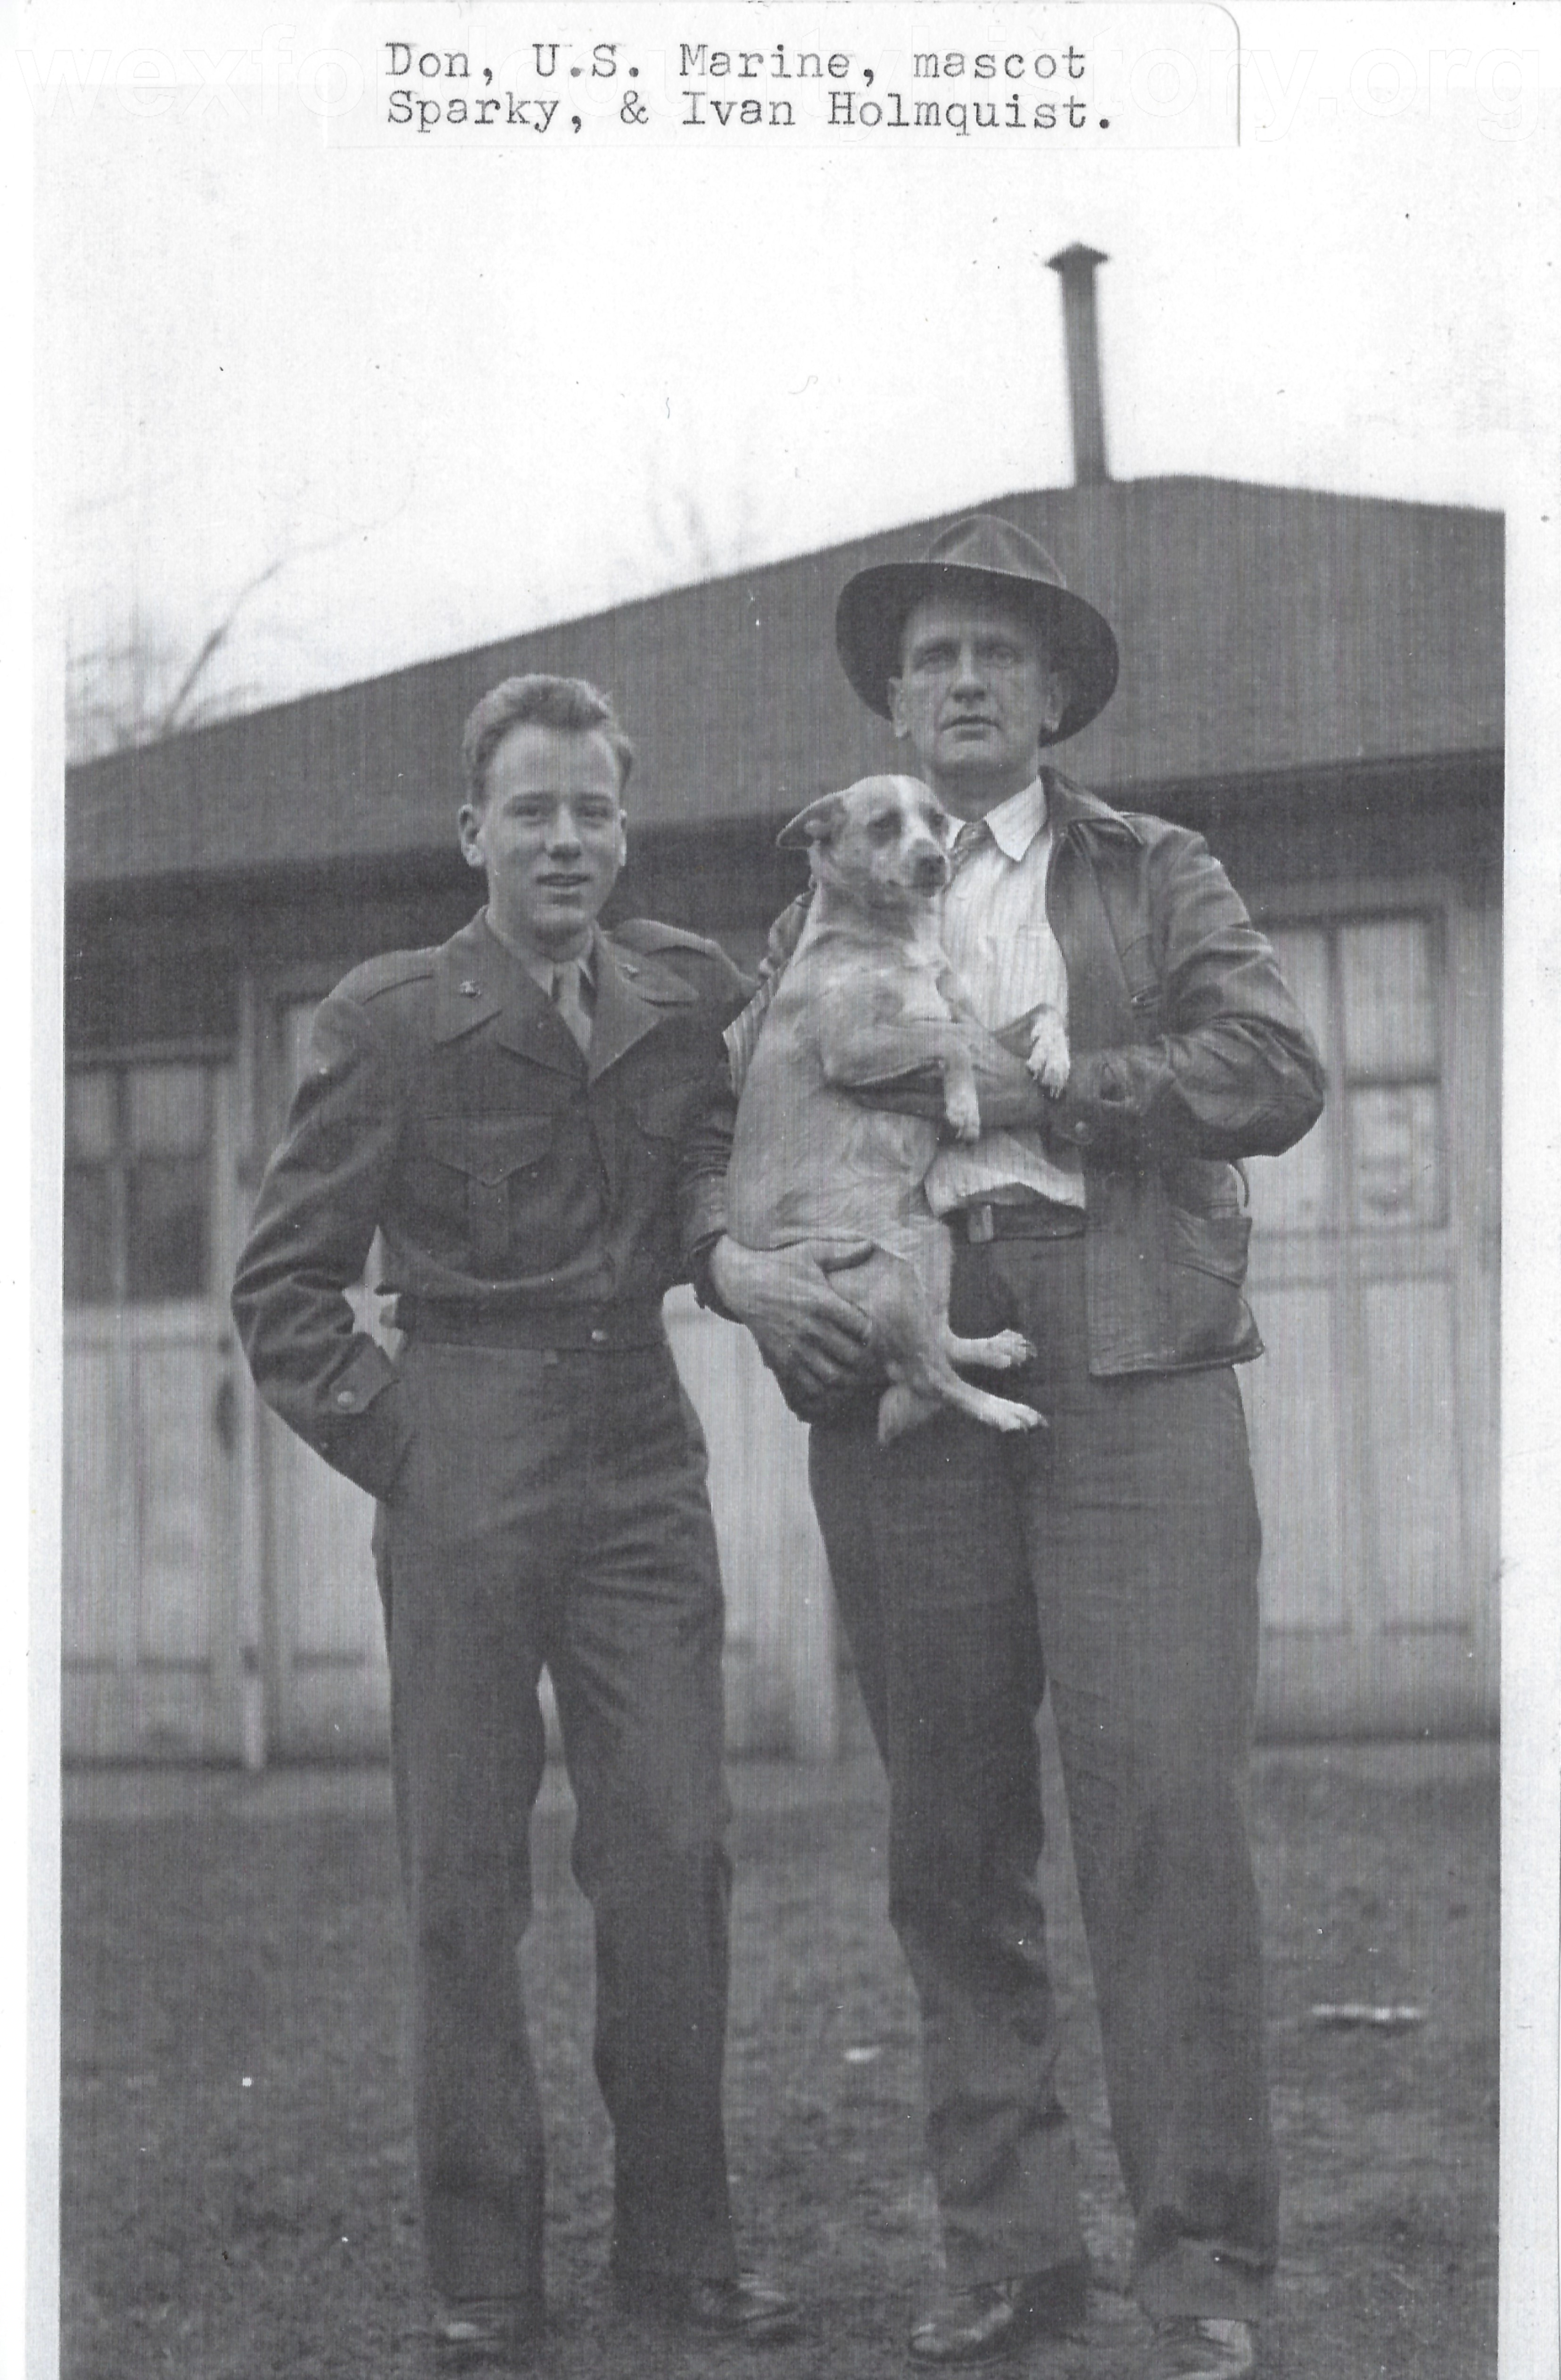 Don And Ivan Holmquist, with Sparky